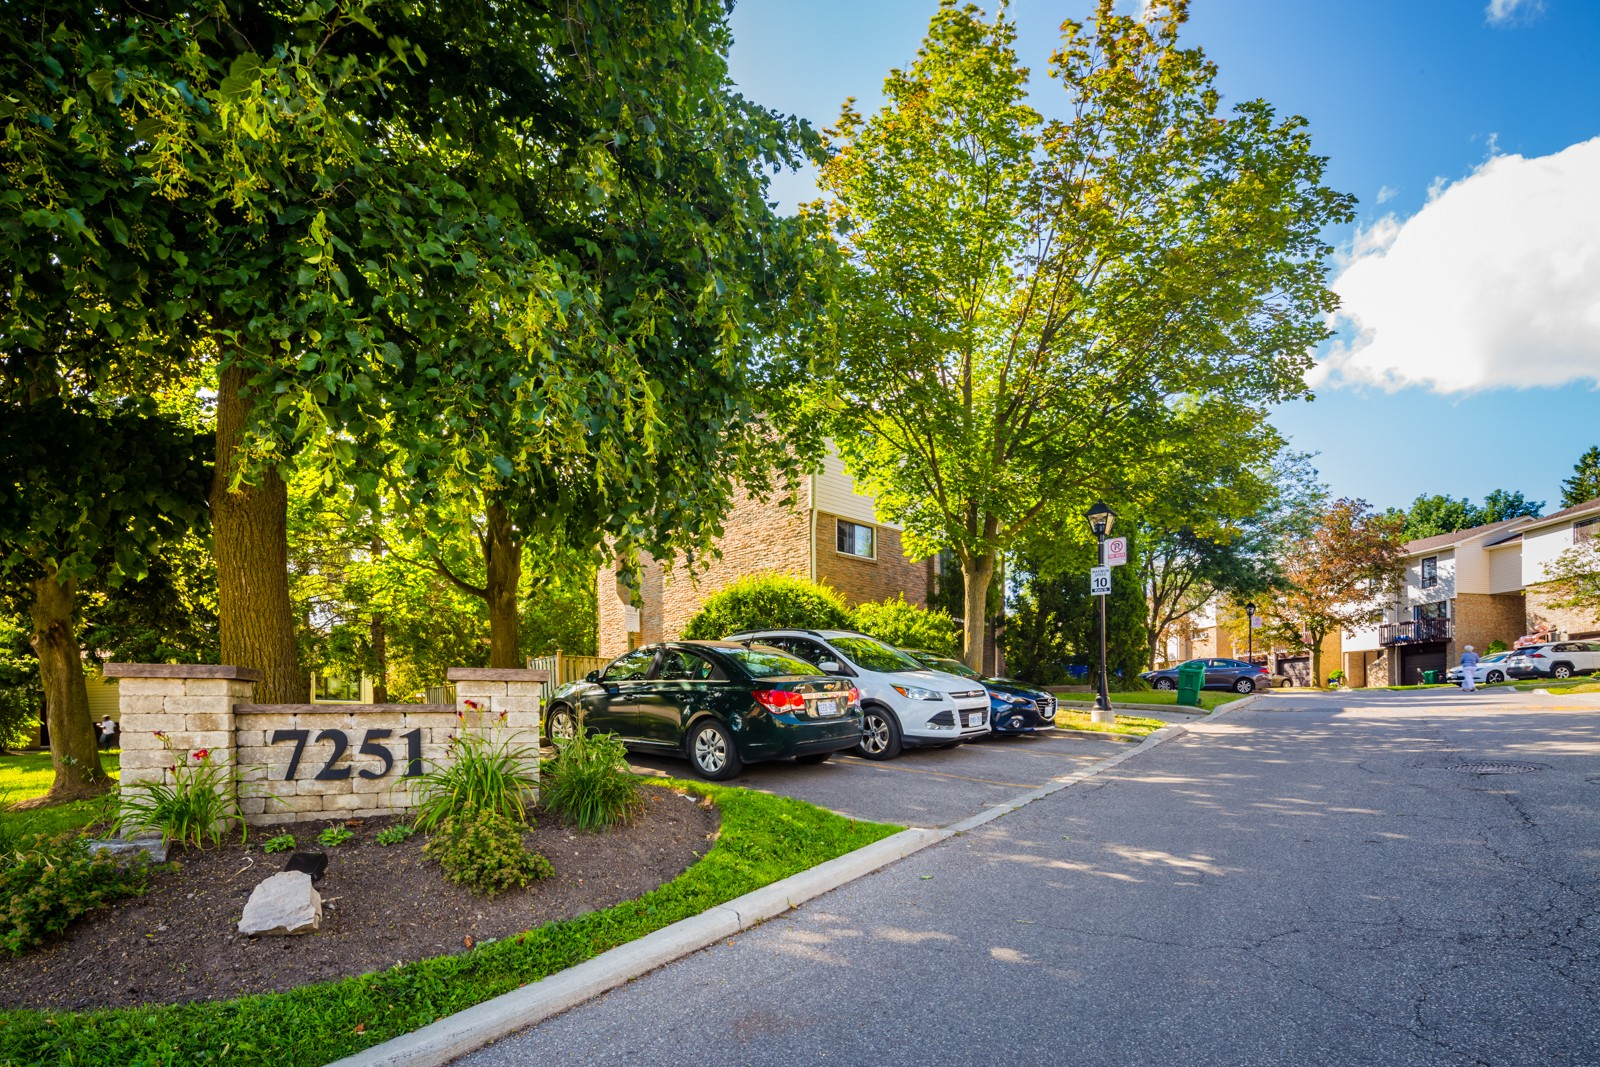 7251 Copenhagen Townhouses at 7251 Copenhagen Rd, Mississauga 0